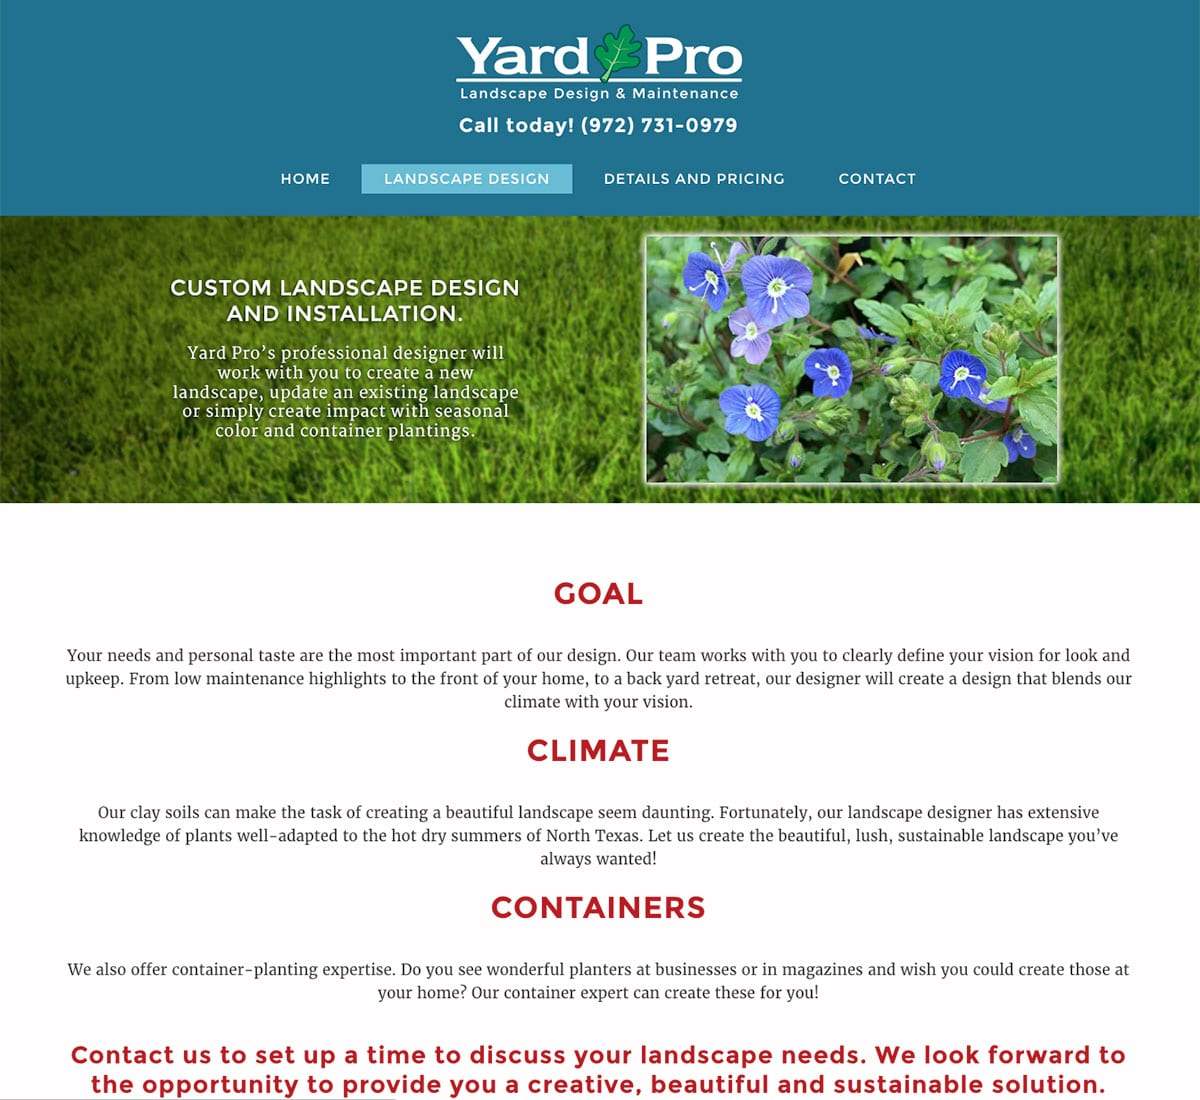 The Yard Pro Landscape Design Mk42 Creative,Architectural Design Plans